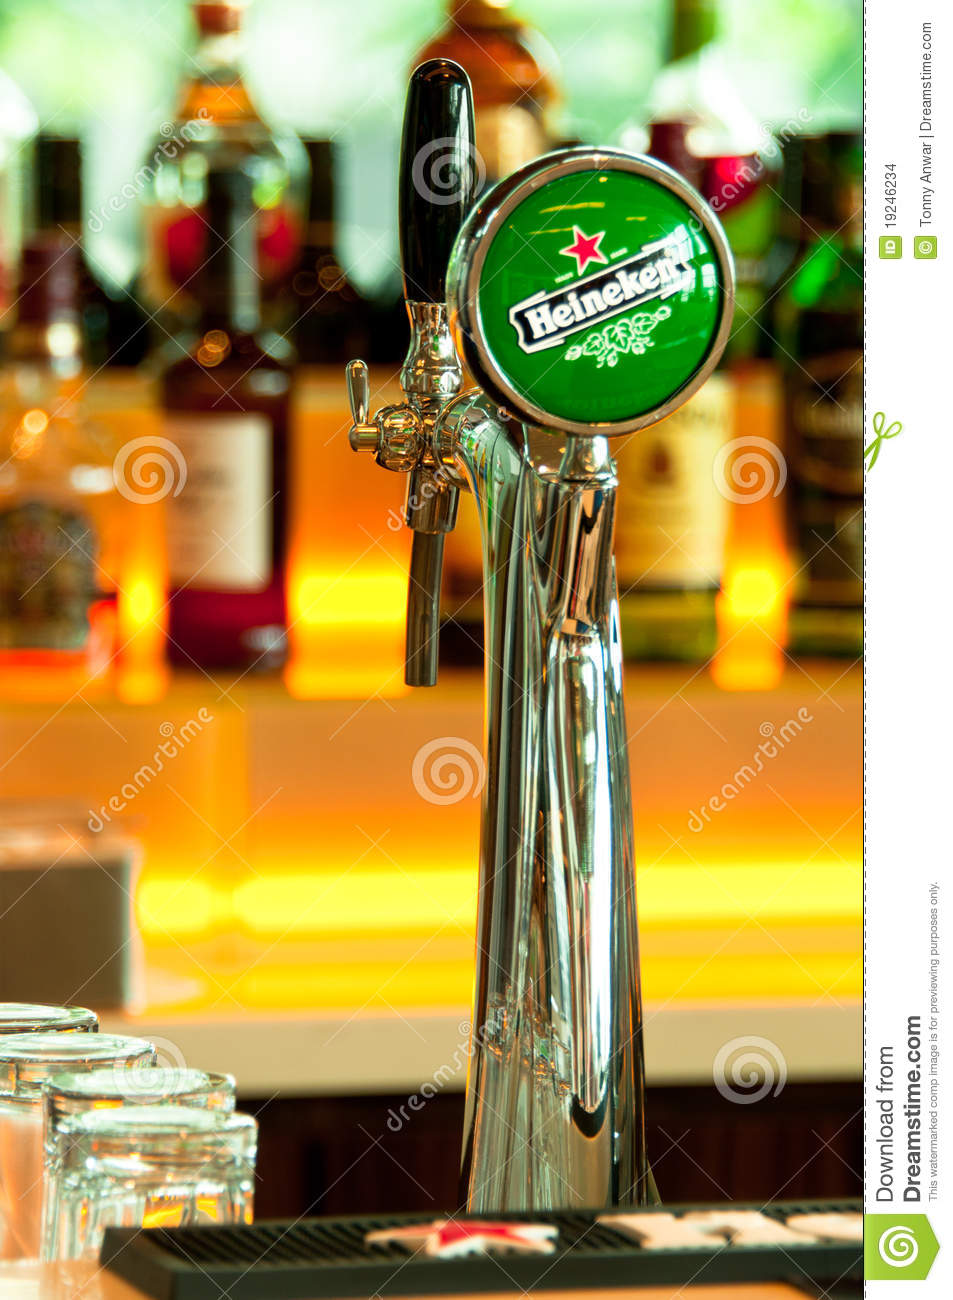 Heineken Beer Tap Editorial Stock Image Image 19246234